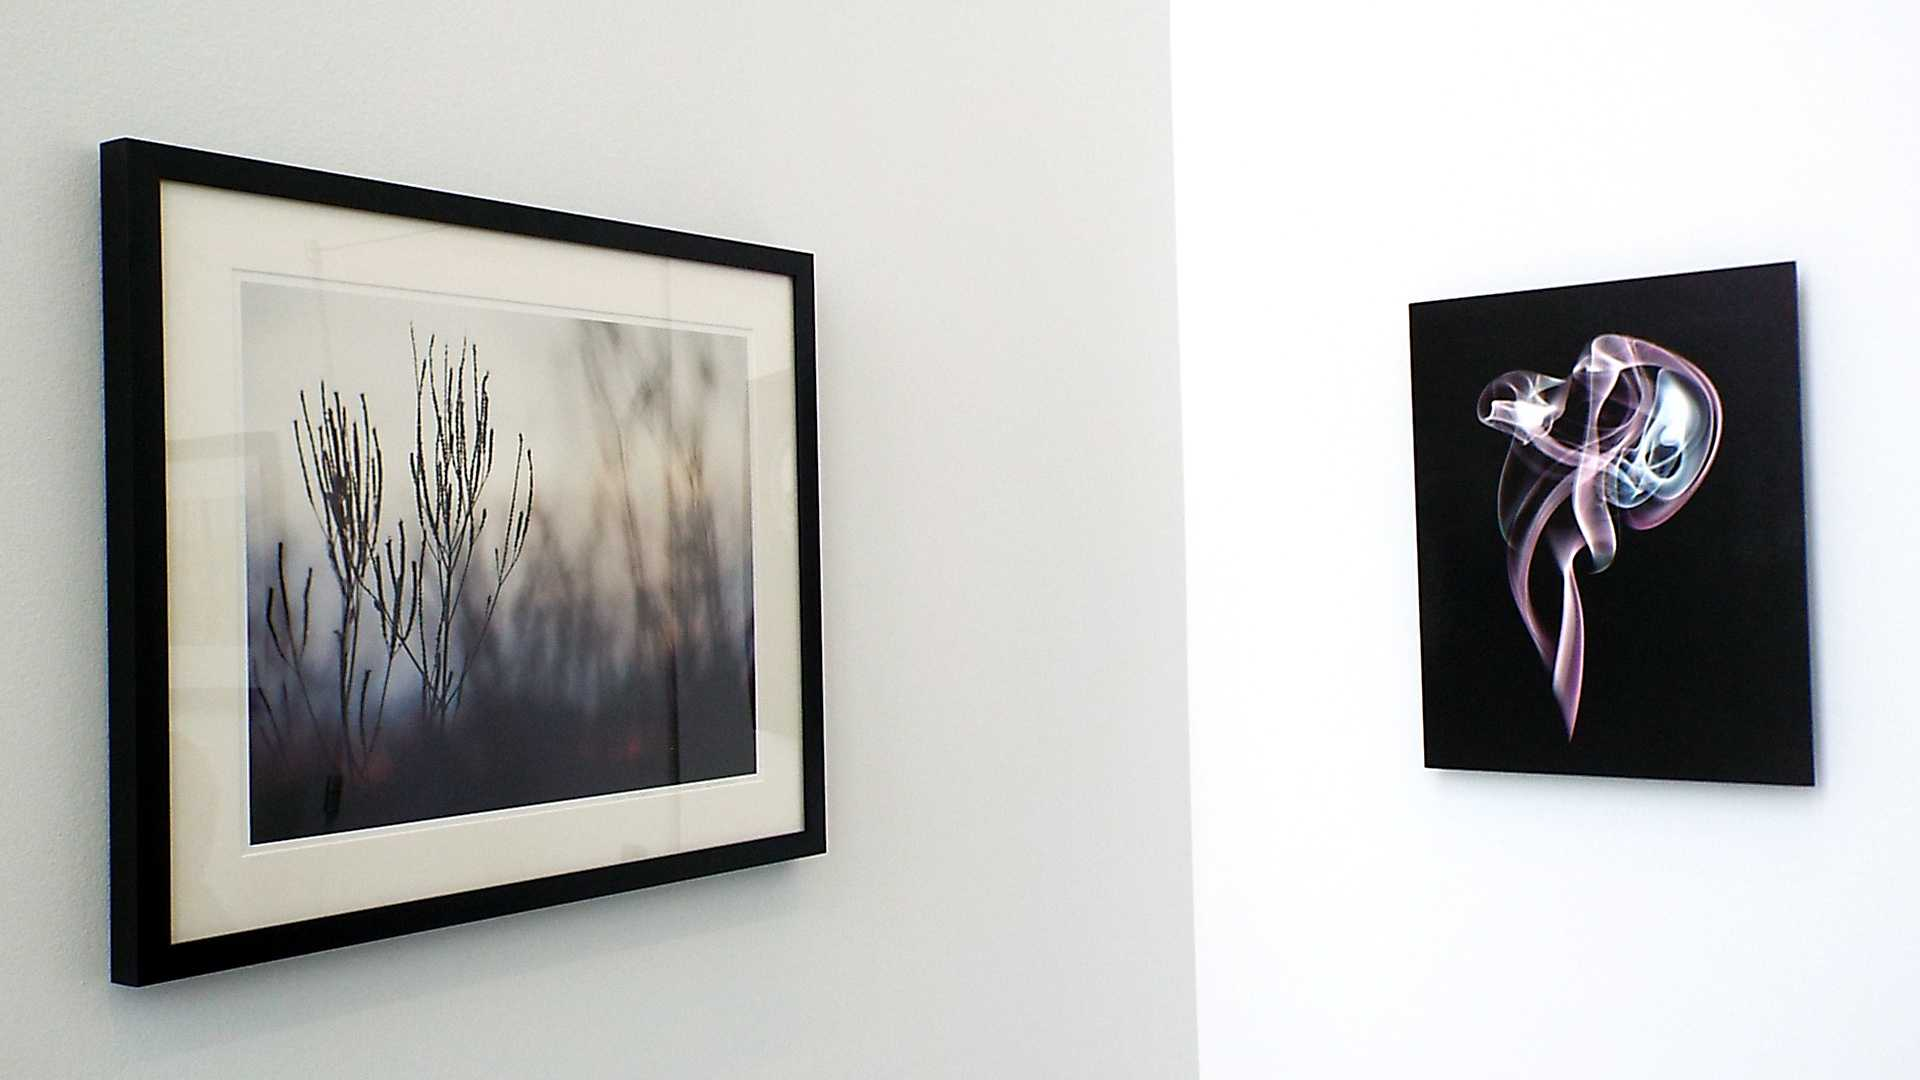 """The pieces """"Silhouette Glow"""" by Dee hudson (left) and """"Apparition"""" by Lorae Mundt (right) at the Wings Student Art Gallery in the College of DuPage on Jan. 28. These and many other pieces will be here until Feb. 27, 2015."""